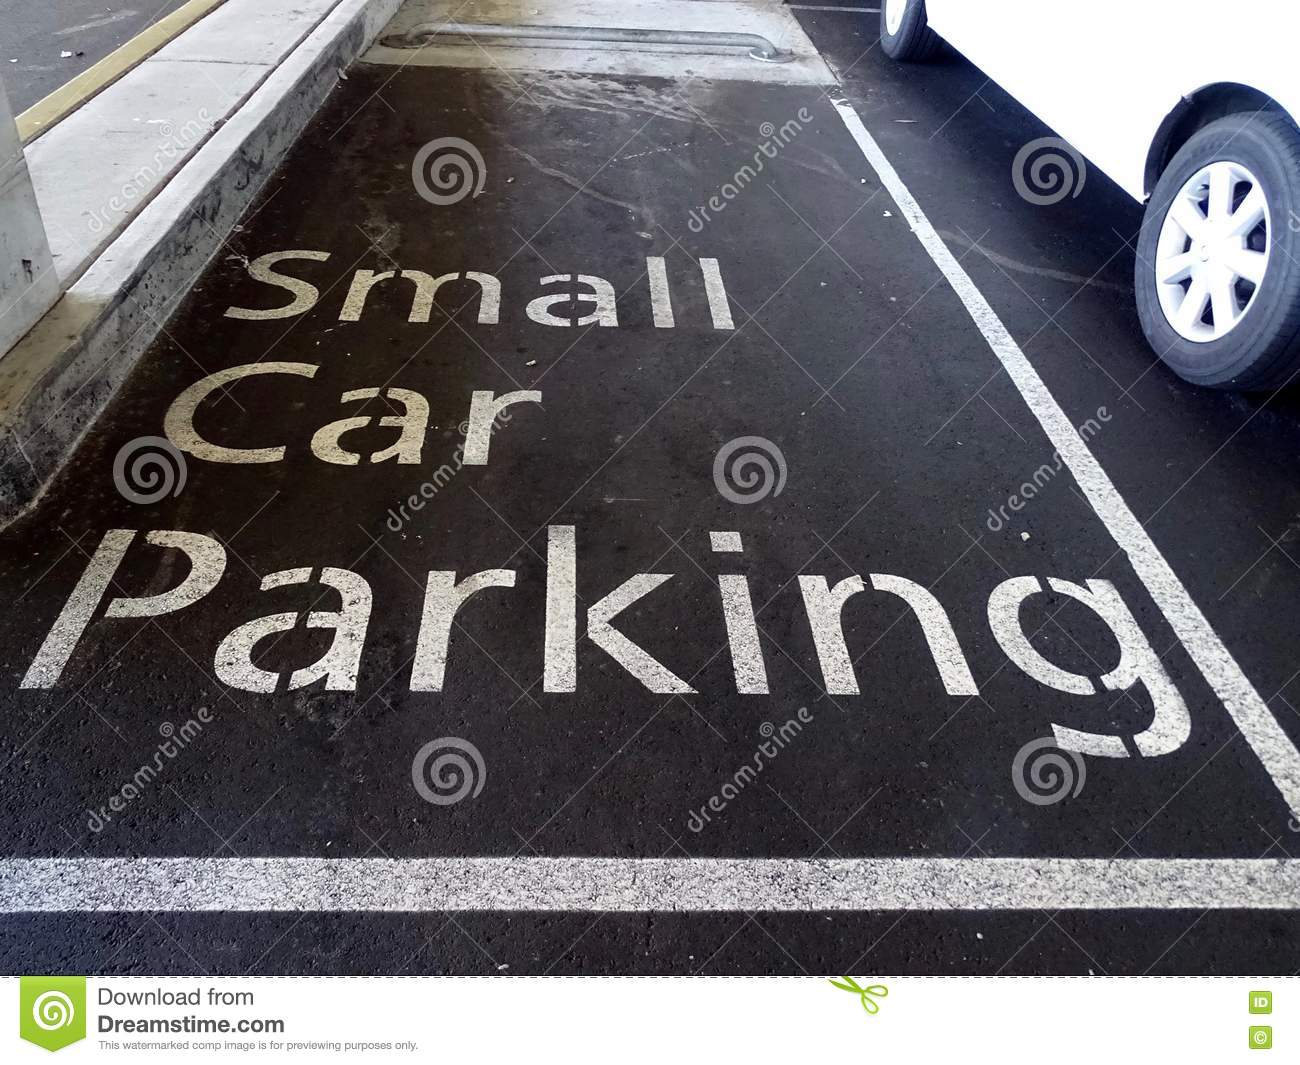 small car parking space stock photo  image of space  shopping